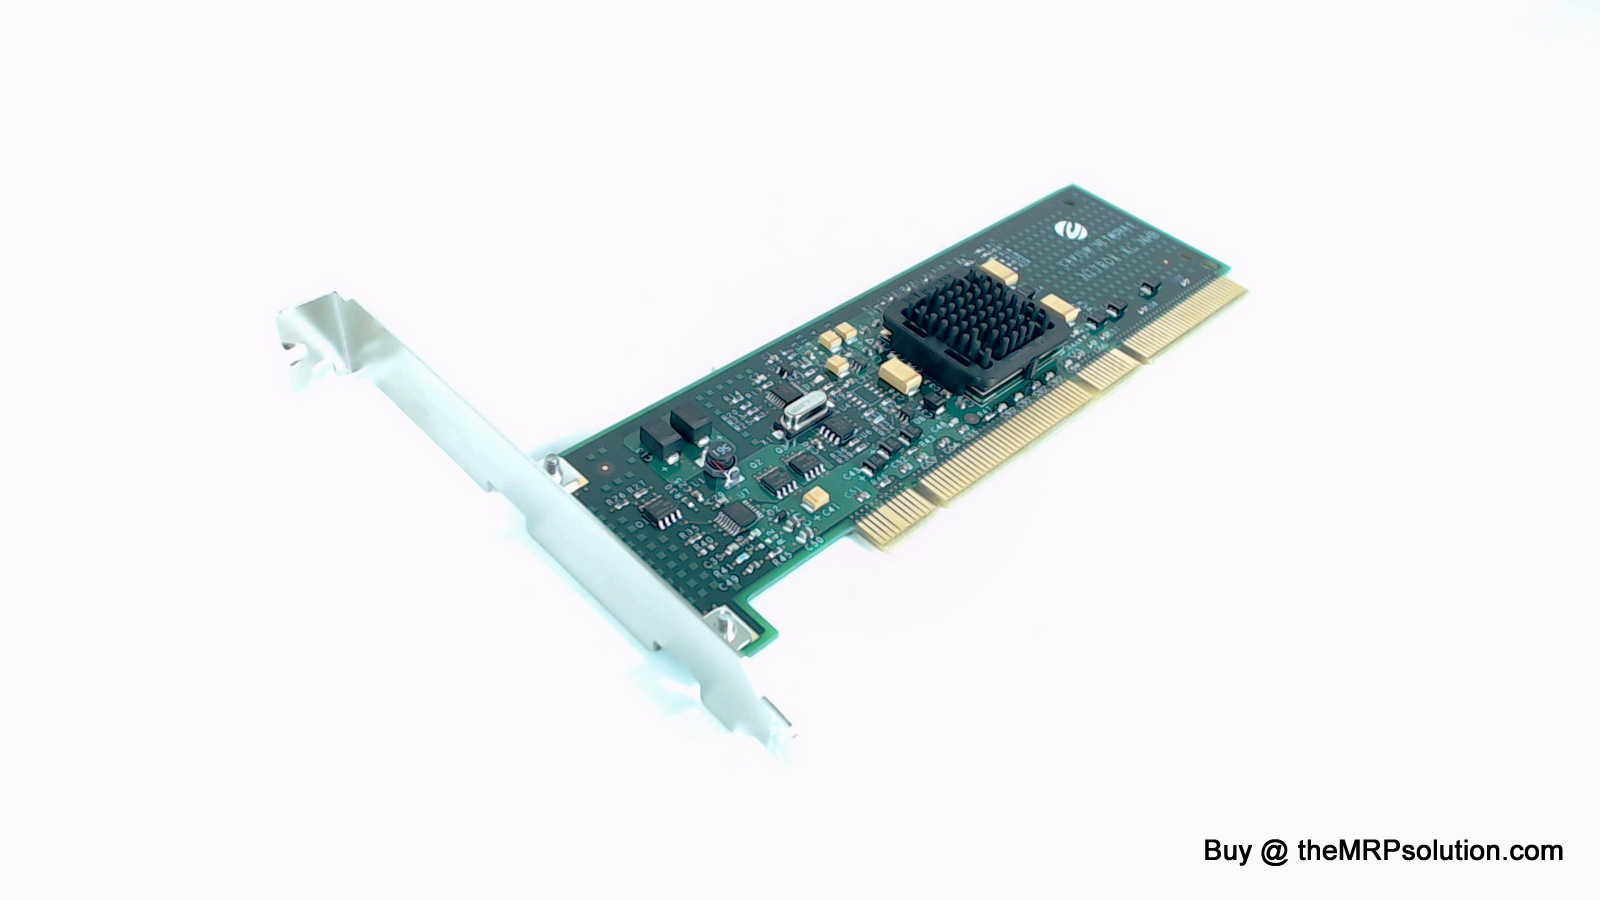 DELL CN1120-350-NHB PCI/PCI-X HALF HEIGHT ACCELERATION New